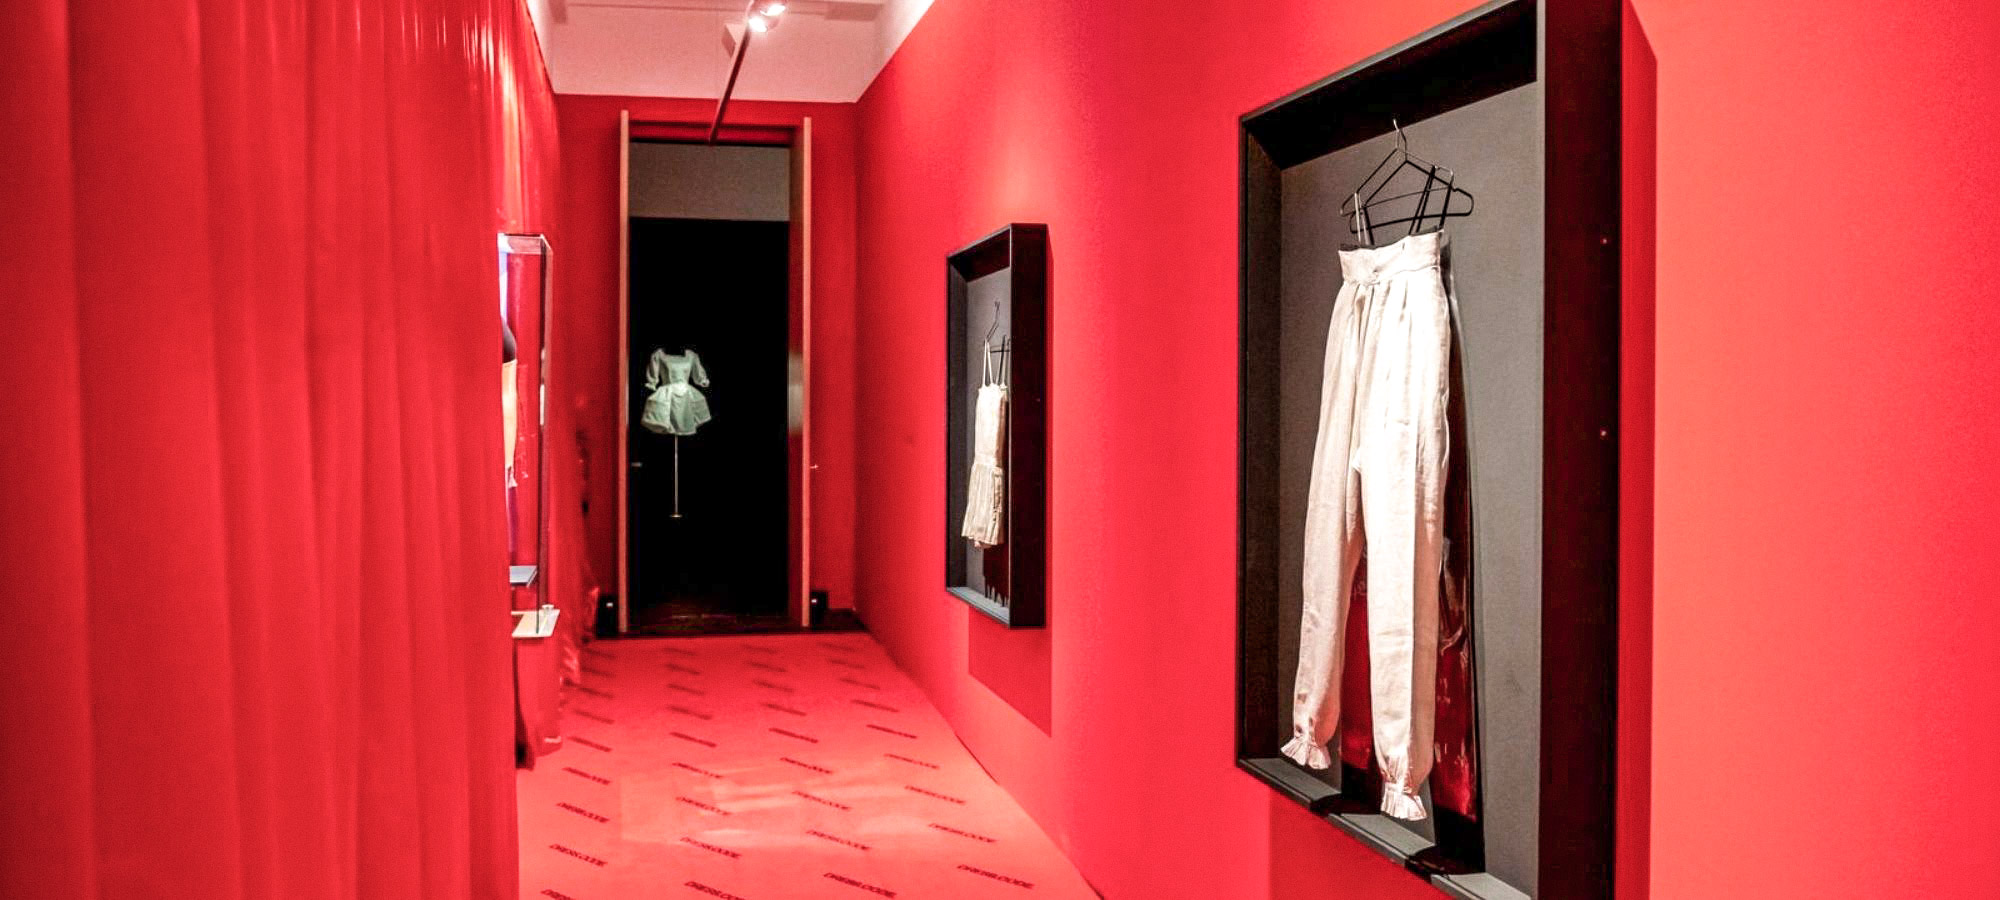 A pair of old, white trousers are hung on the wall of a red corridor in a black frame